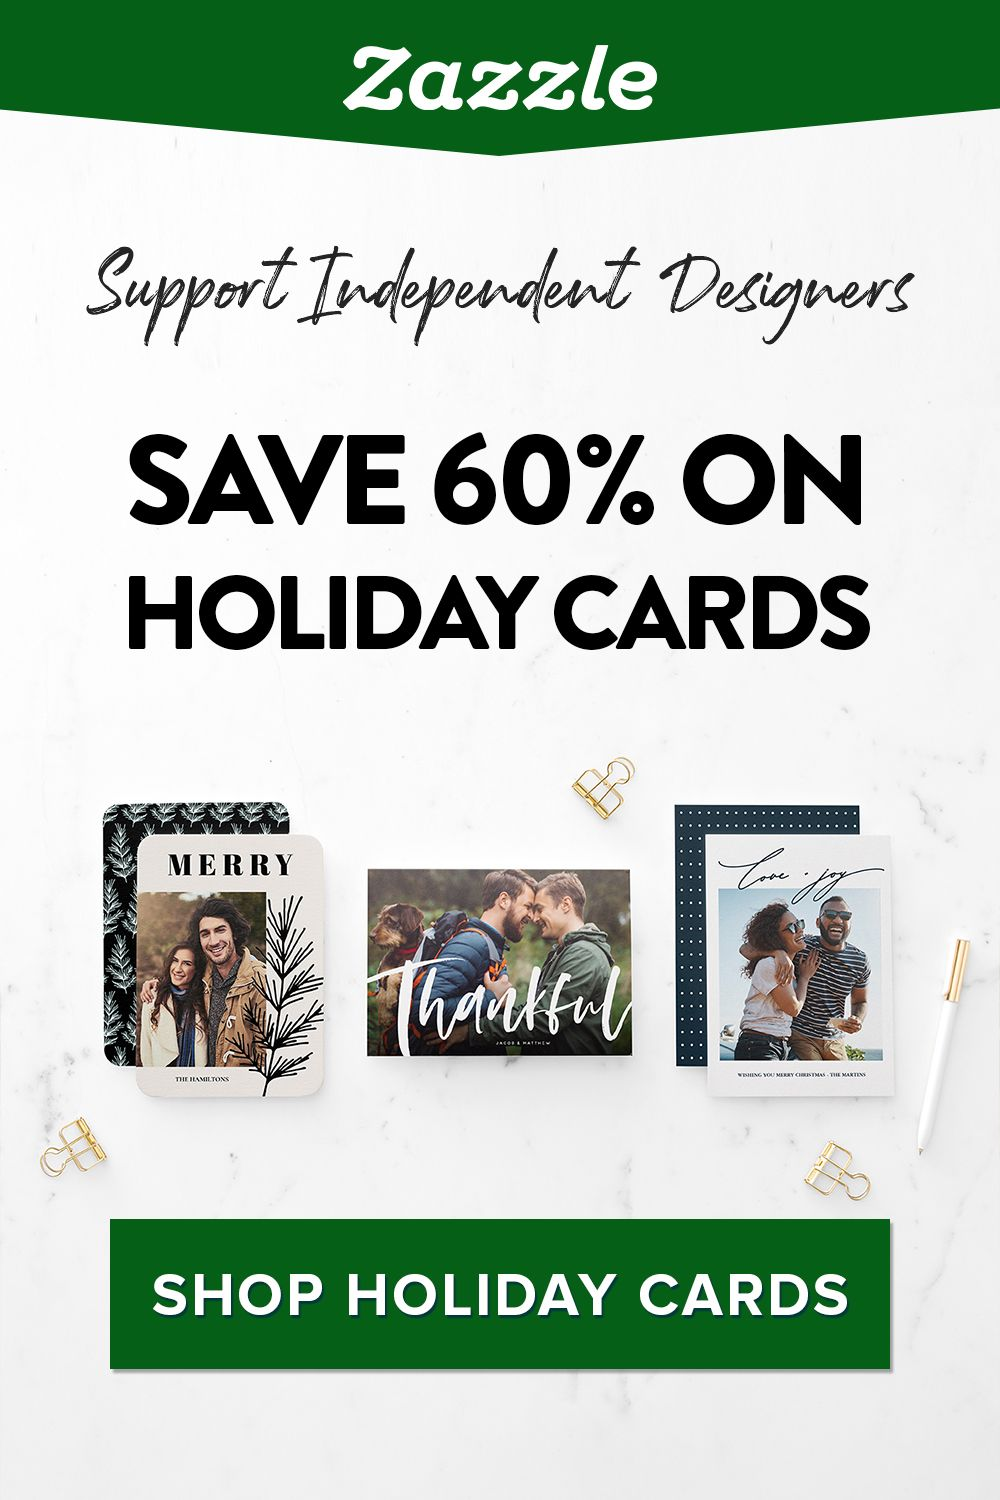 Find the perfect holiday card on Zazzle. We've got thousands of designs to choose from, including themes for newlyweds, a new baby, funny, pets, Disney and more. Browse by style, theme, or number of photos.